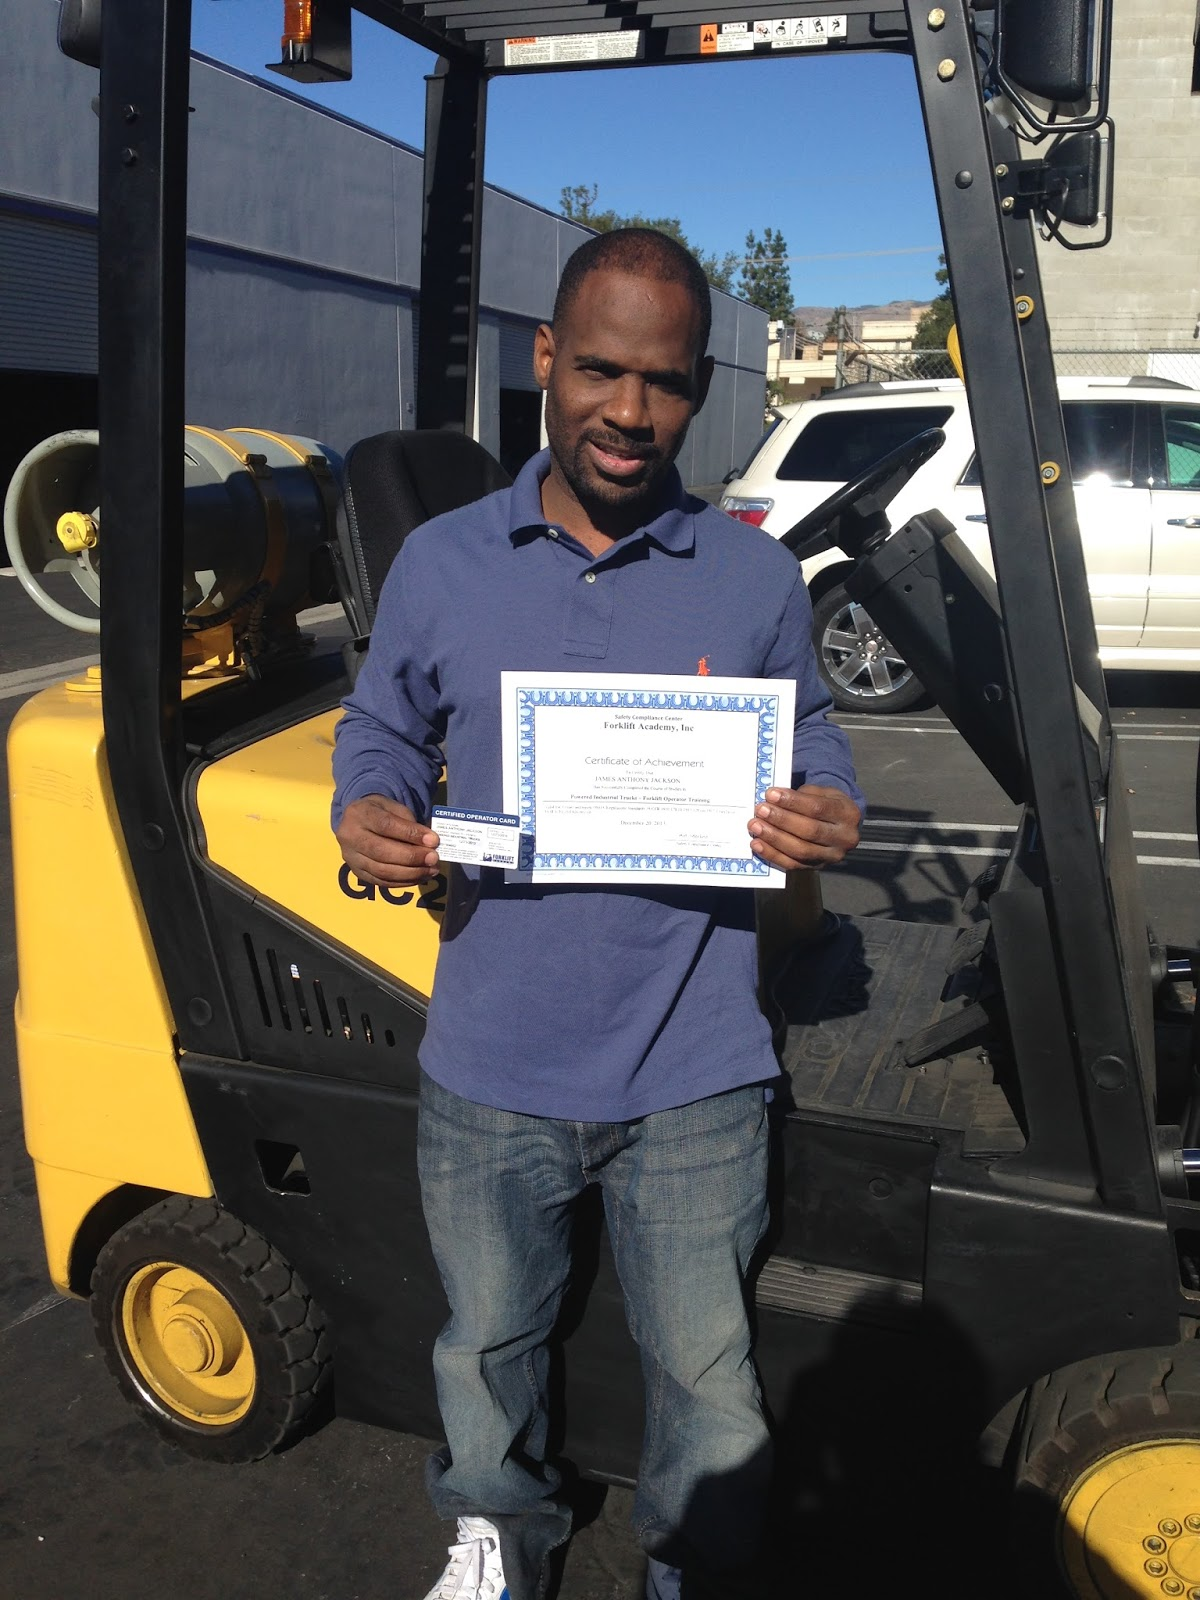 Free Professional Resume Forklift Certification Houston Tx